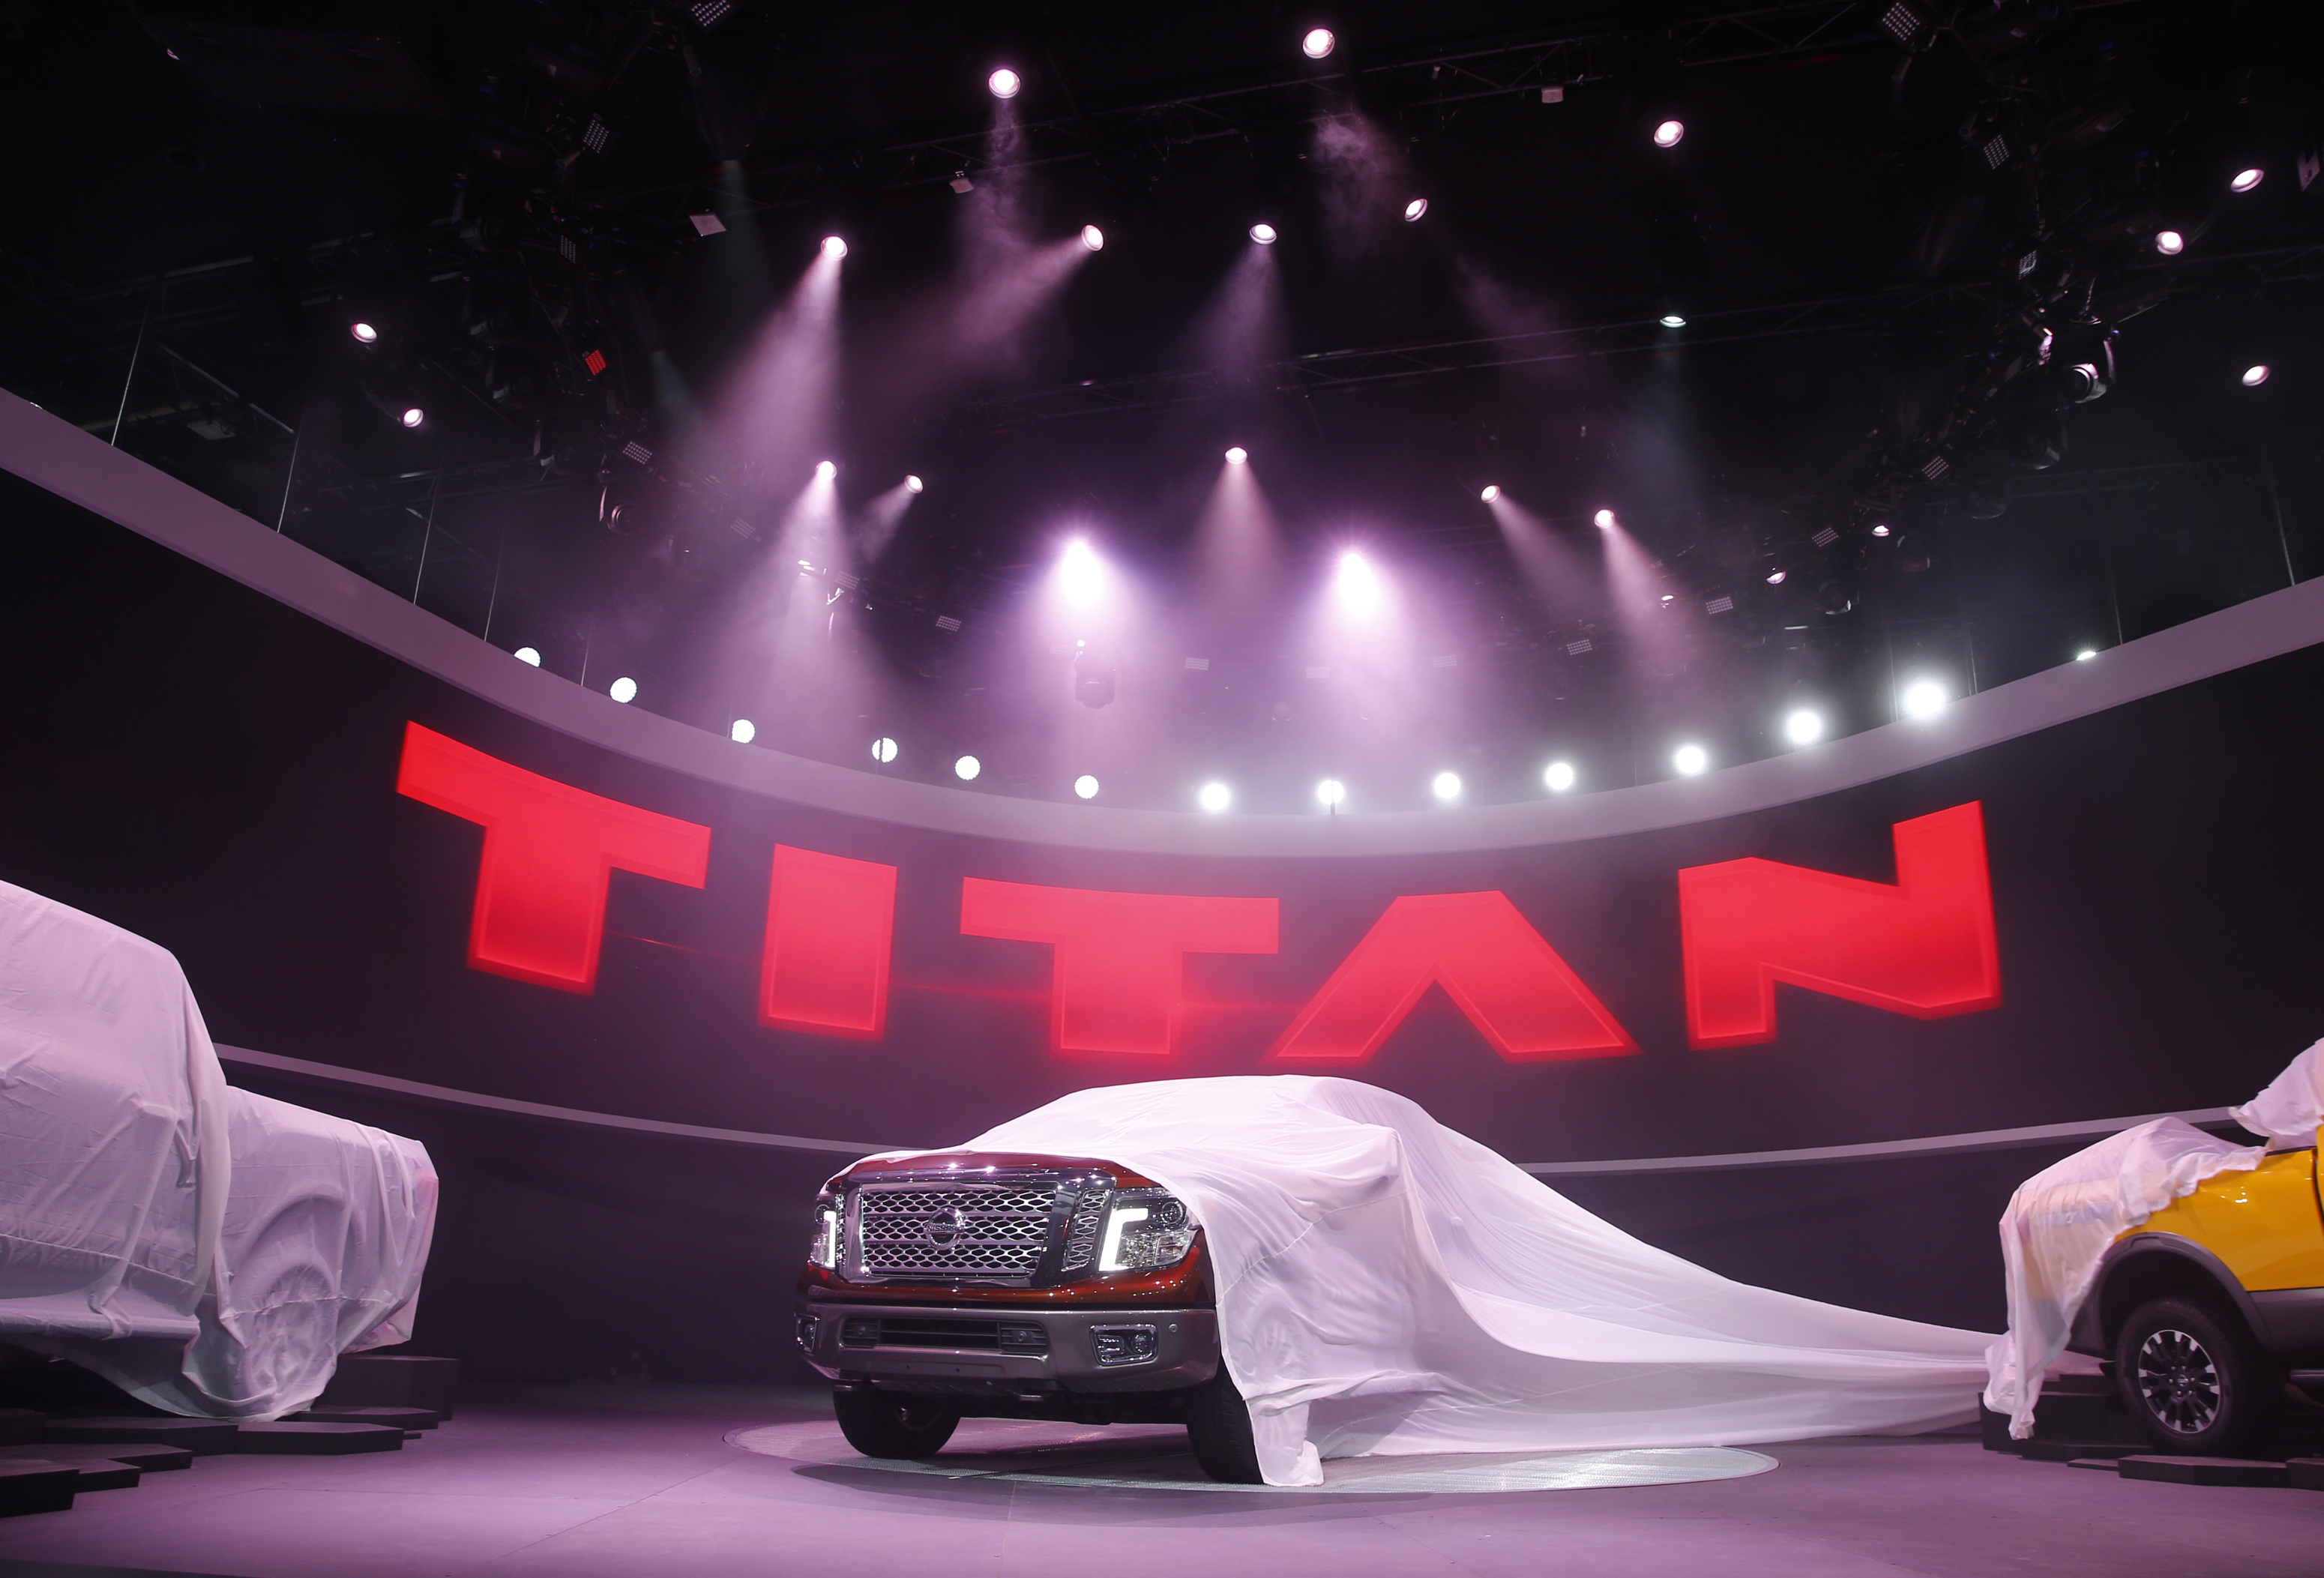 The 2016 Nissan Titan pickup truck is unveiled at the first press preview day of the North American International Auto Show in Detroit